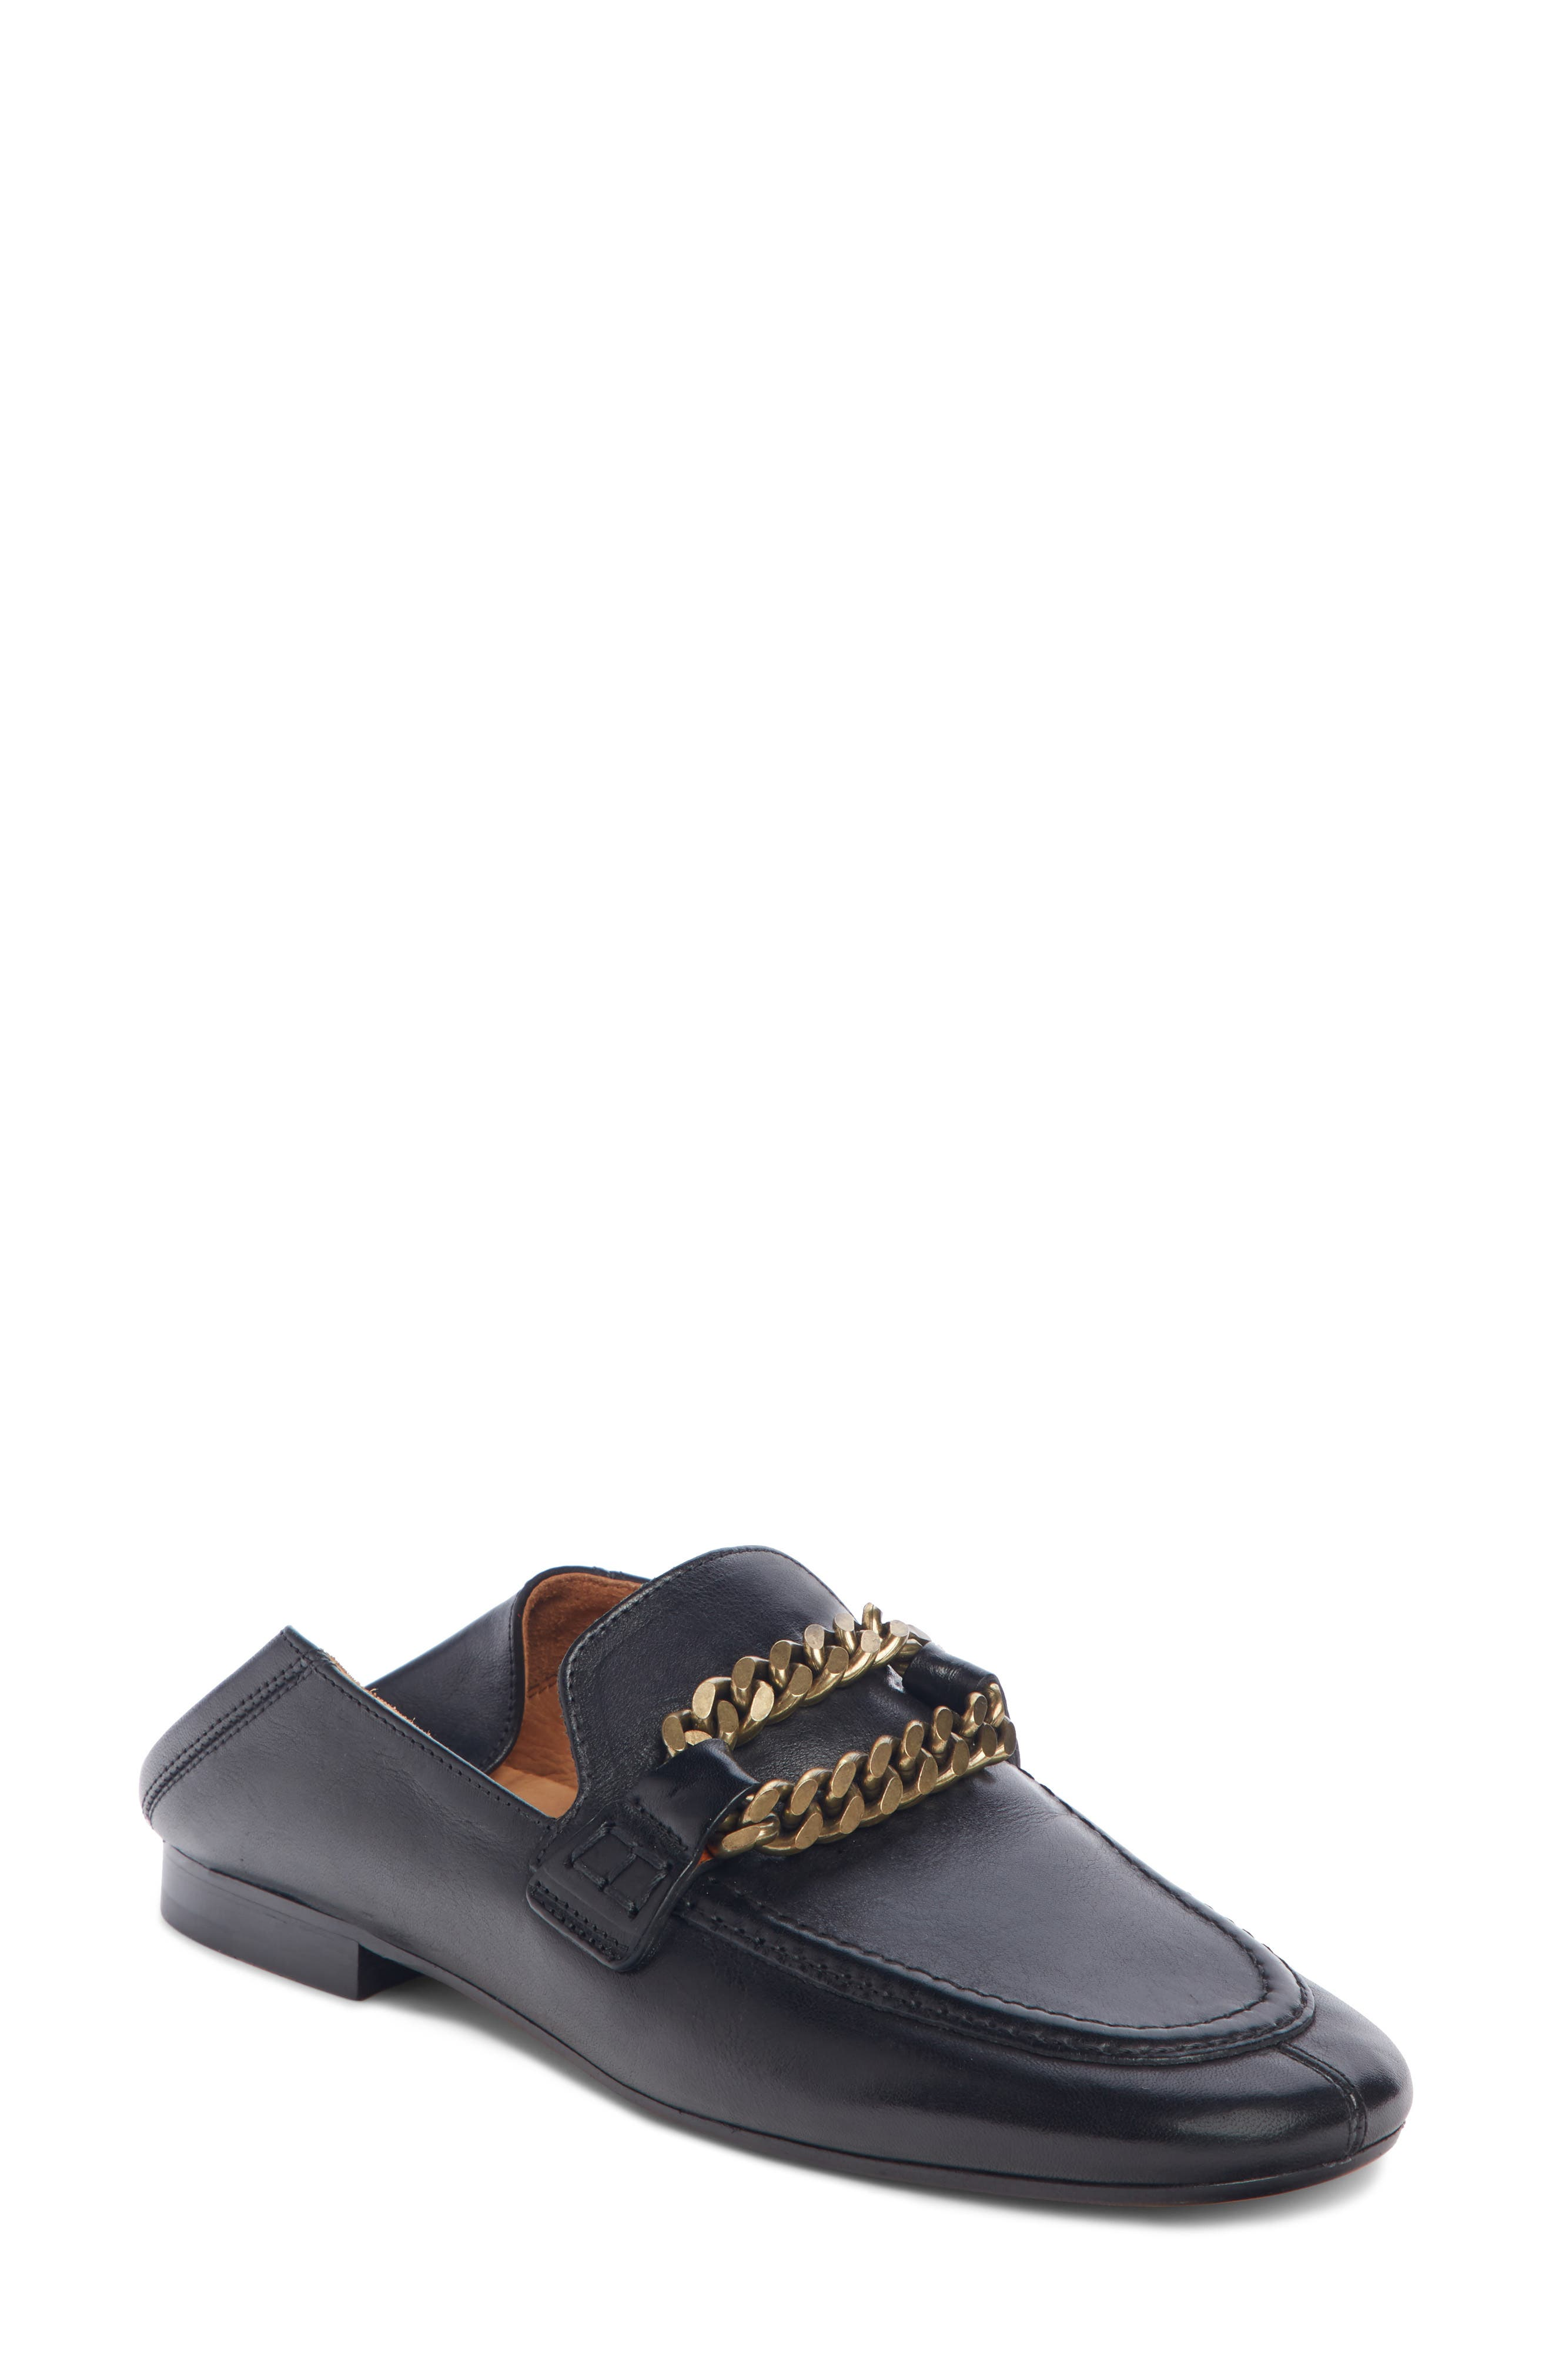 ISABEL MARANT,                             Firlee Chain Convertible Loafer,                             Main thumbnail 1, color,                             BLACK